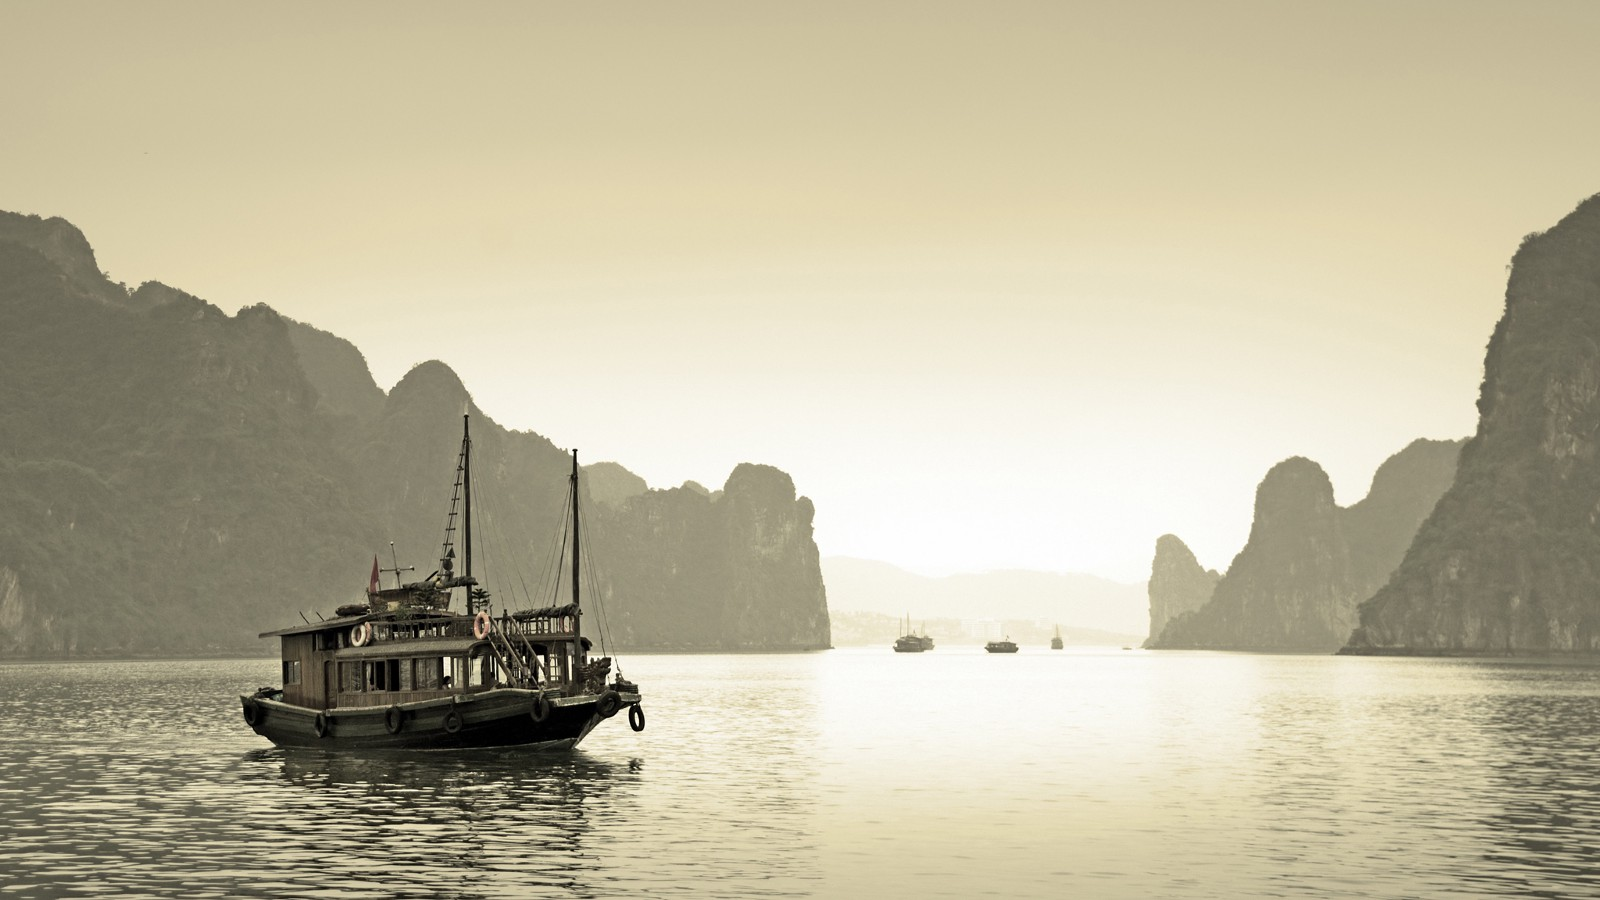 The Gulf of Tonkin in Halong Bay, near Vietnam